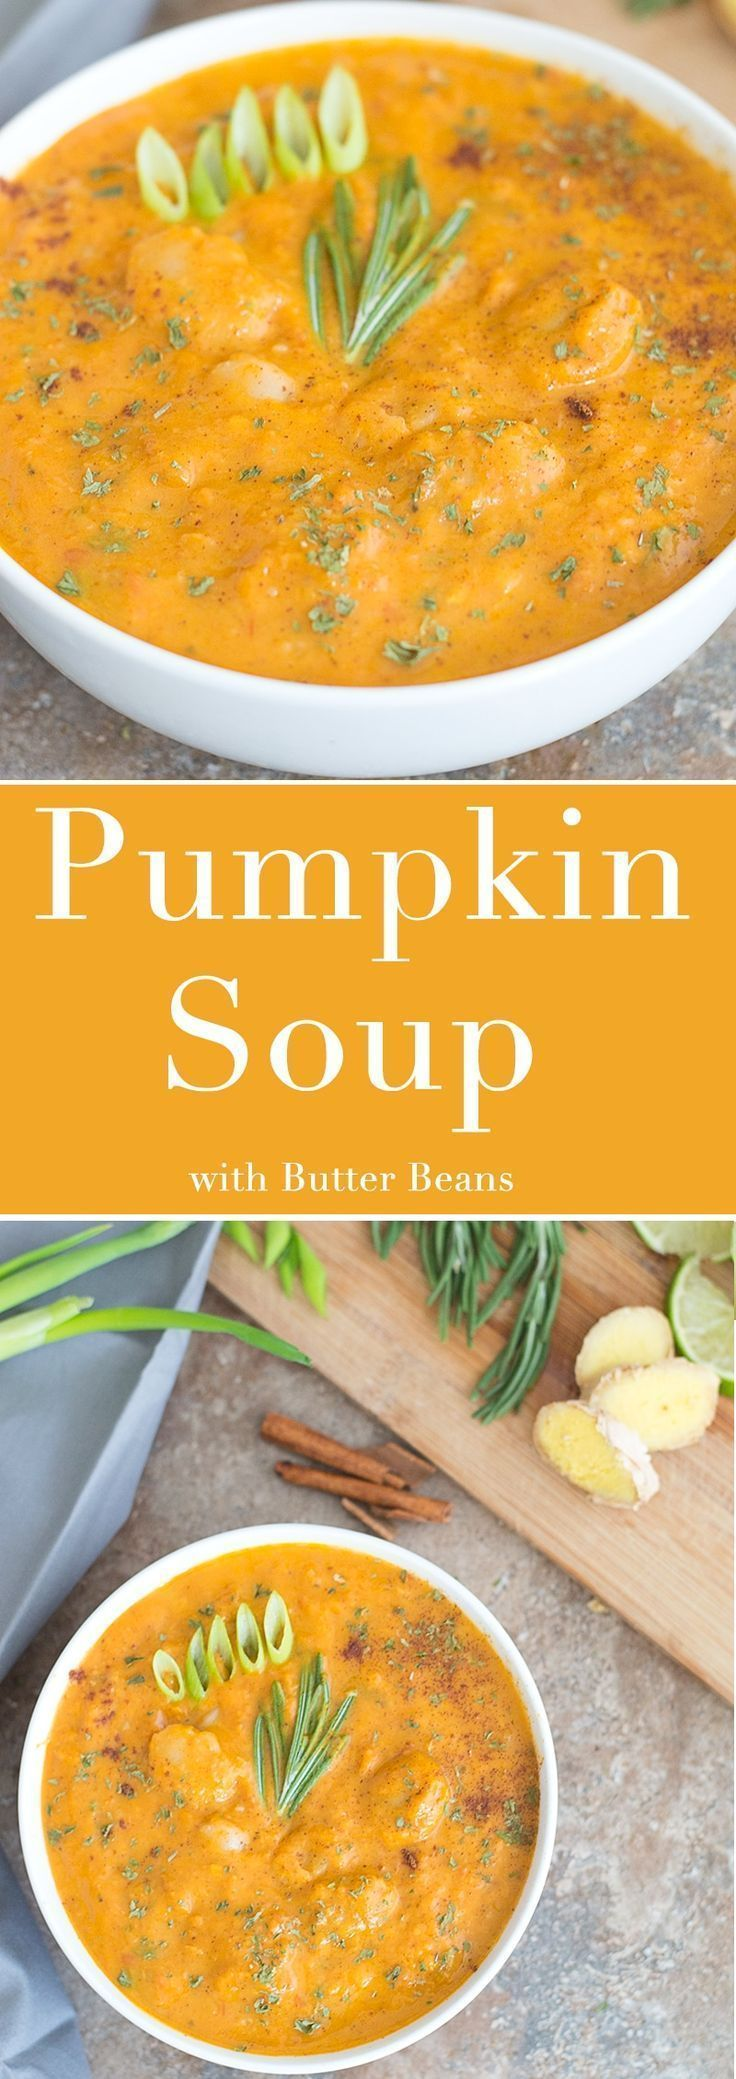 Easy Vegan Pumpkin Soup with Butter Beans is the Out-Of-This-World Fall Time Soup that Soothes the Soul! Flavored with Cinnamon + Nutmeg and Slowly Simmered to Perfection.